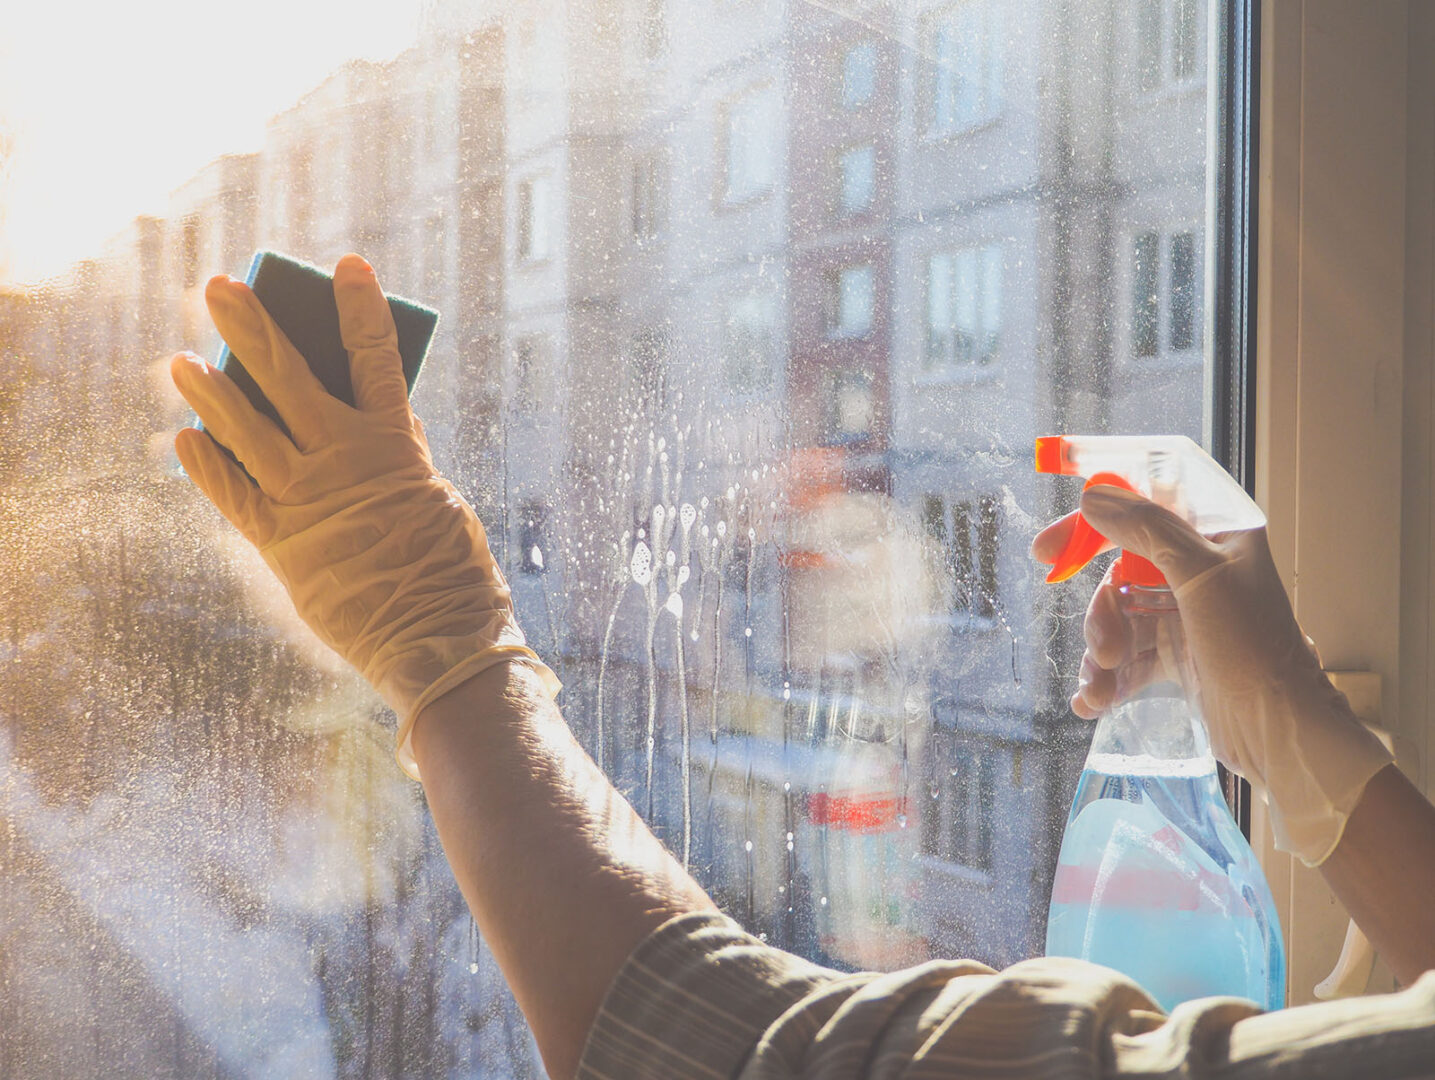 Close up of a cleaner washing windows with a spray bottle